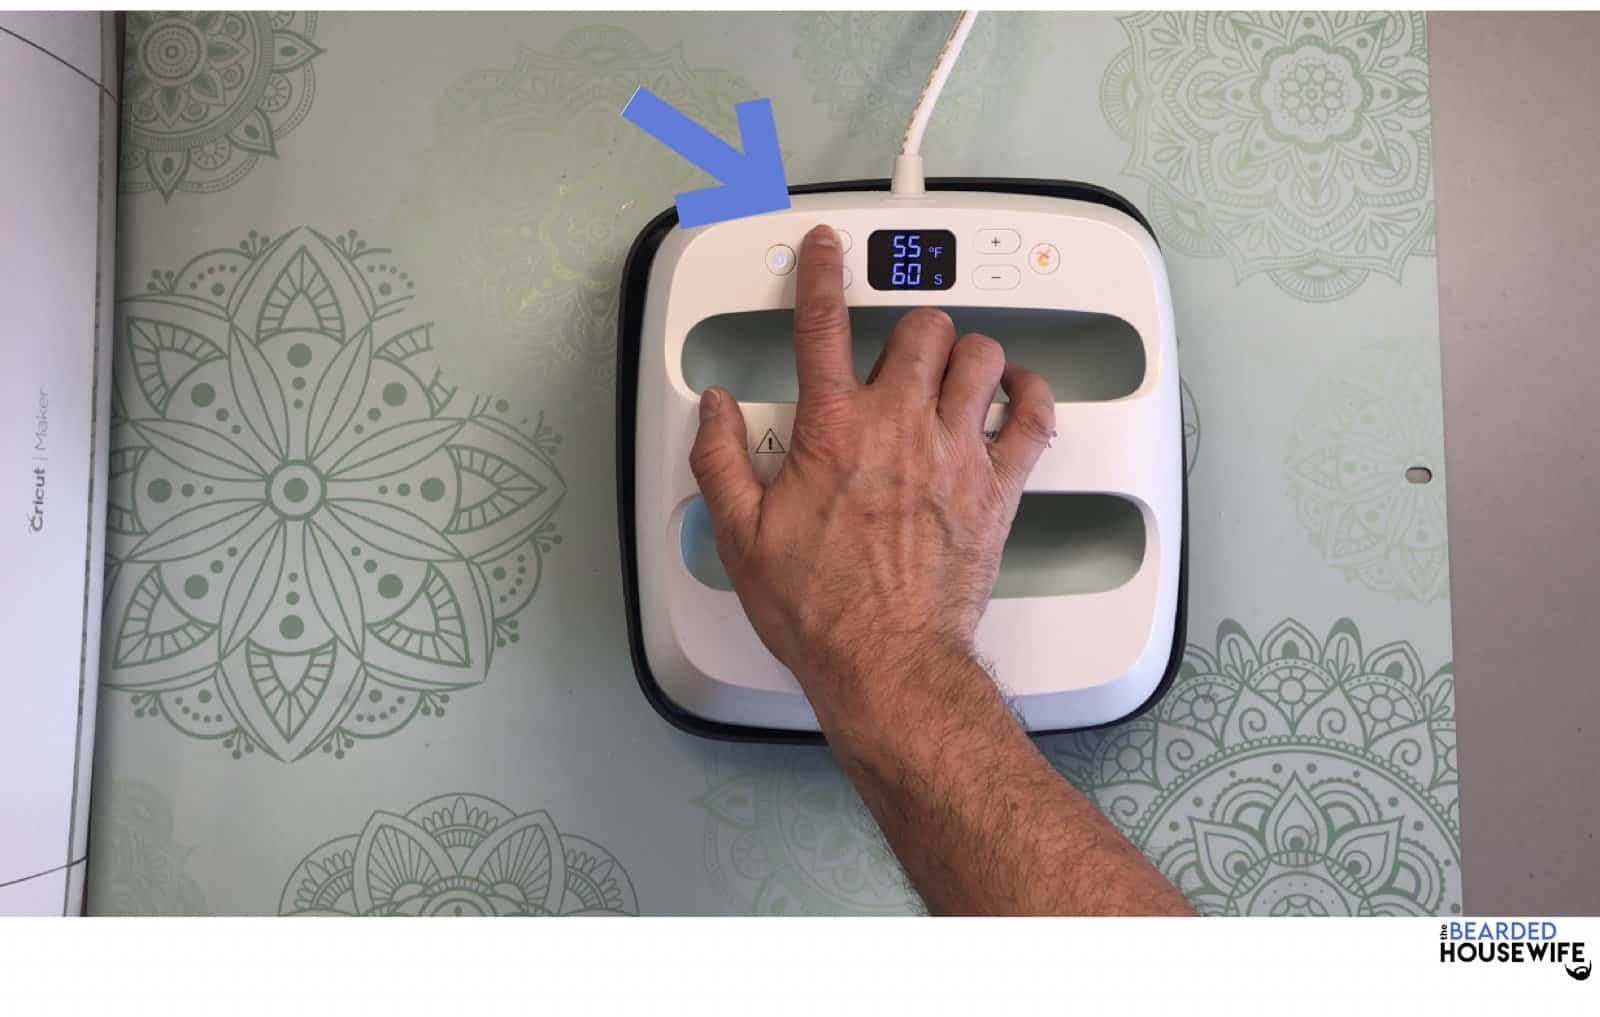 preheat your heat press according to the Cricut Heat Guide's specifications. Press the thermometer to adjust the temp